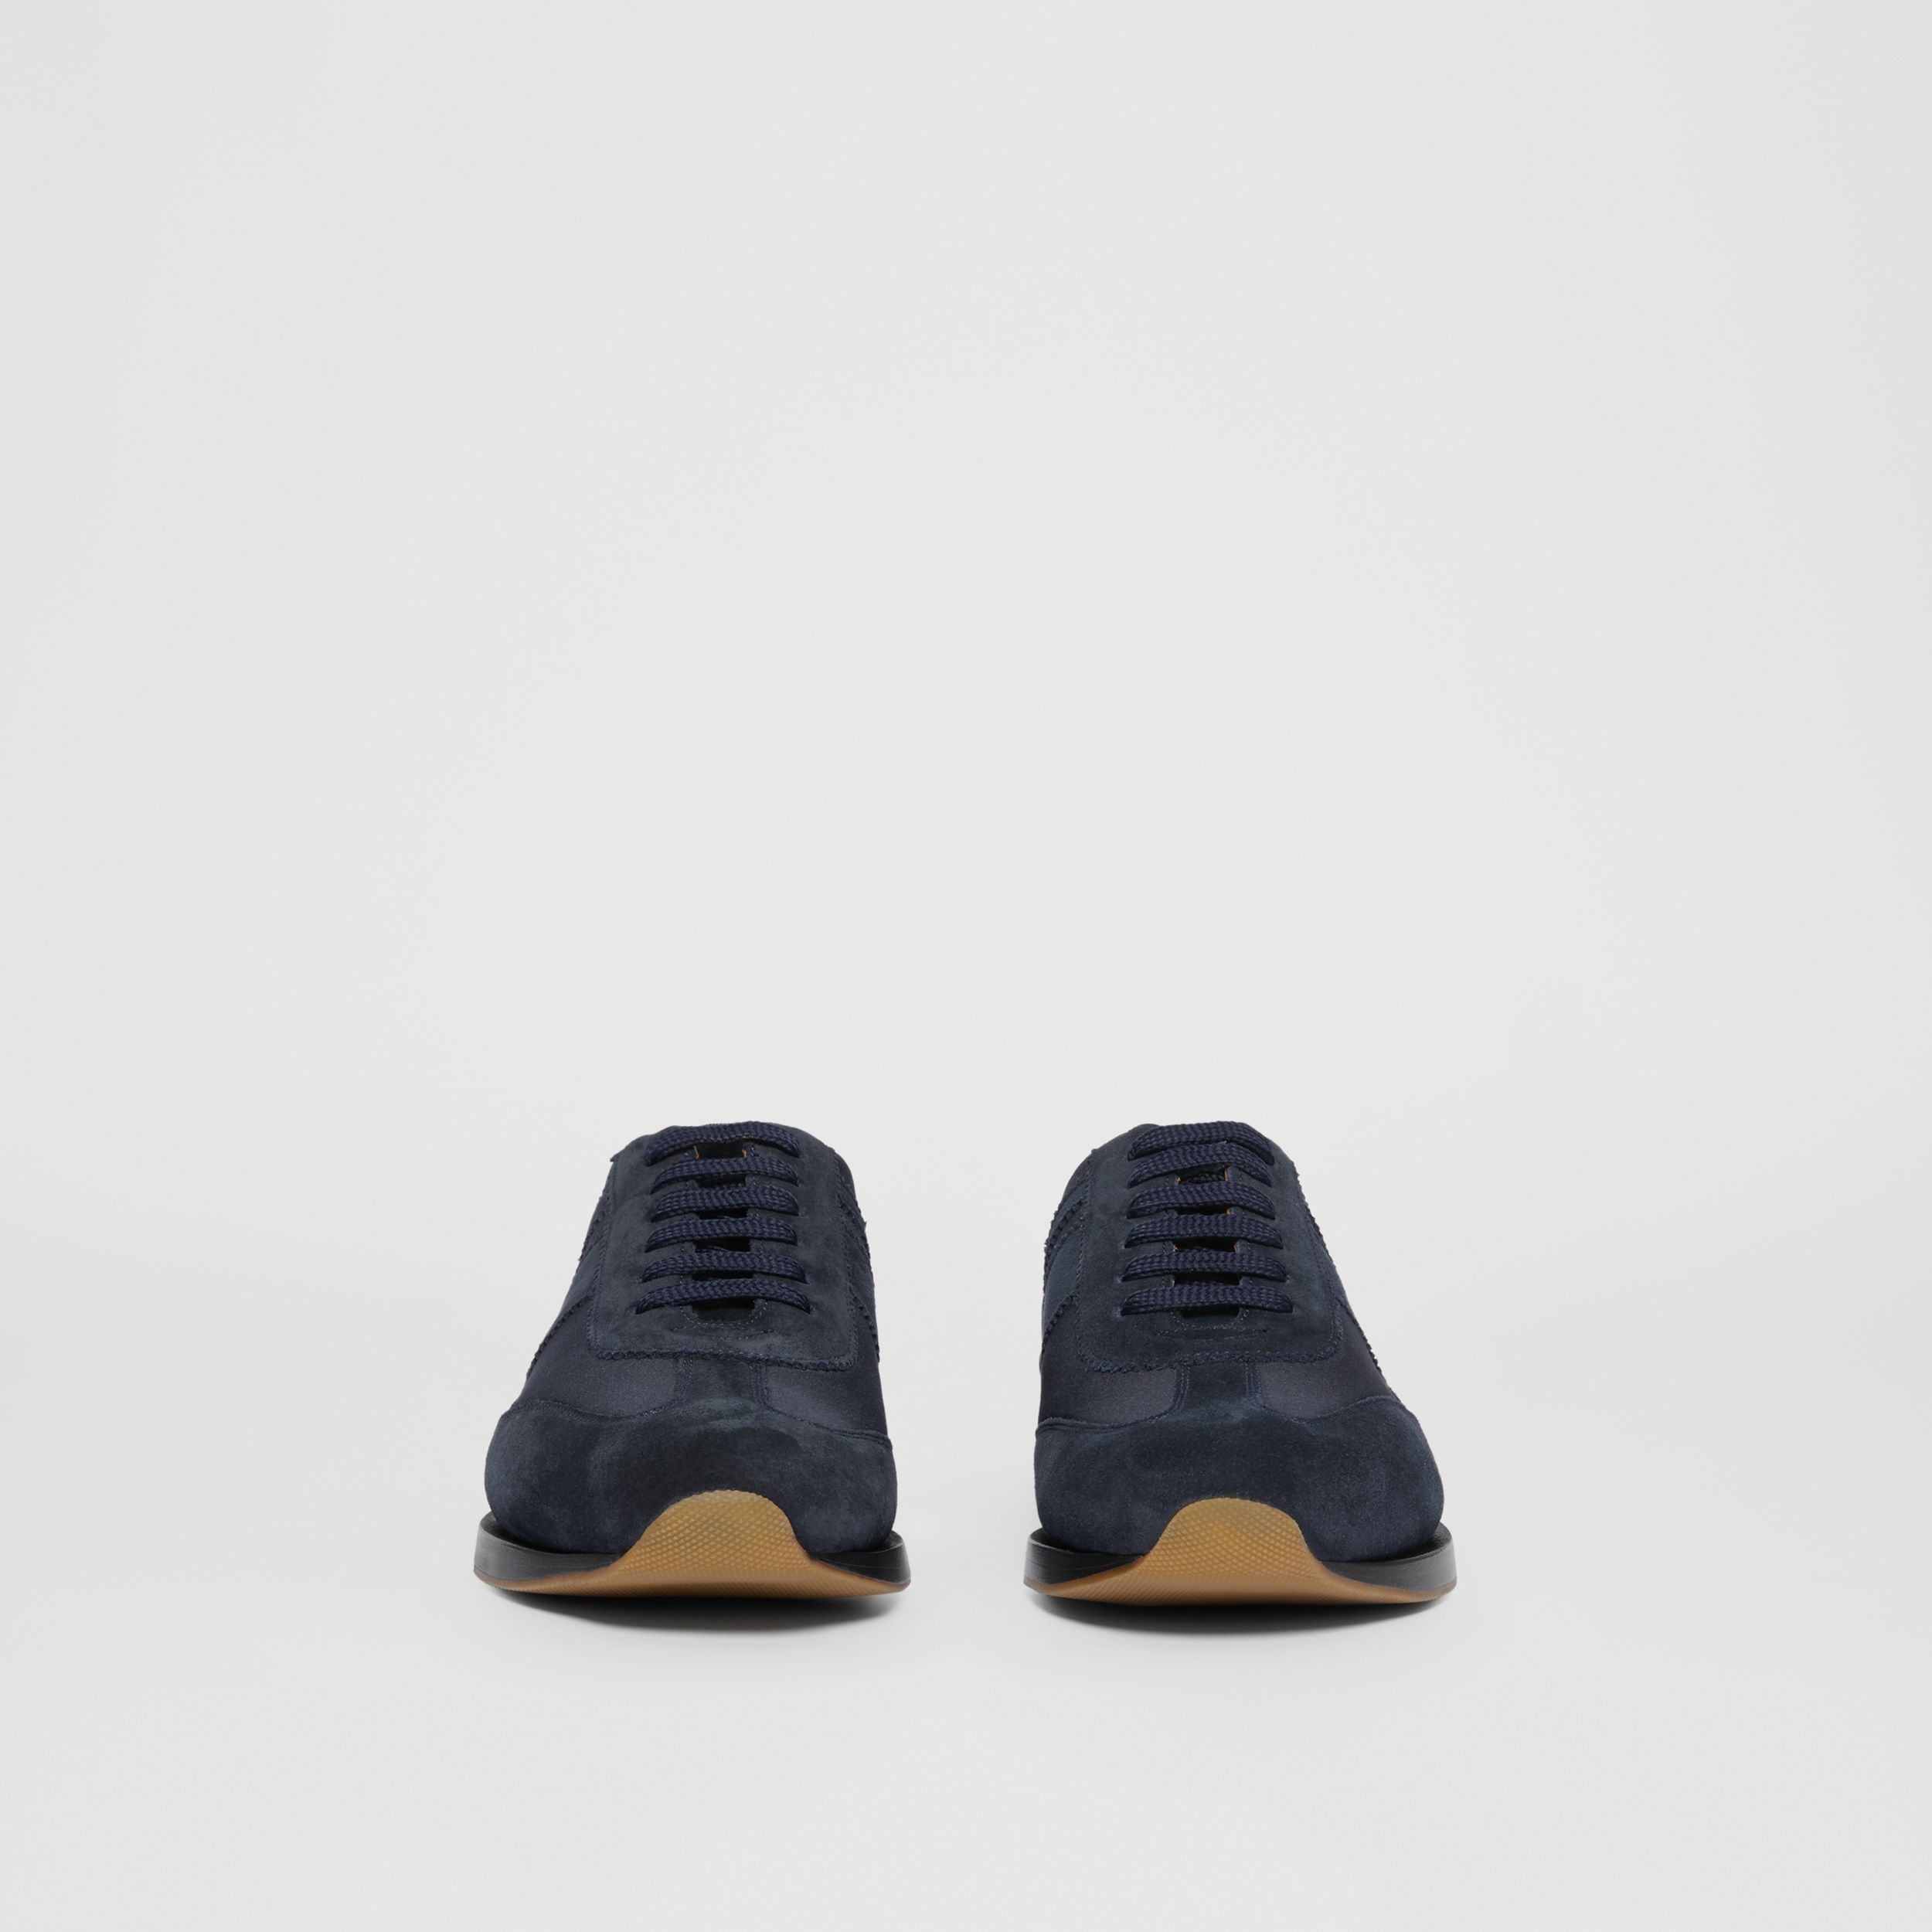 Neoprene Panel Suede Lace-up Shoes in Navy | Burberry - 4